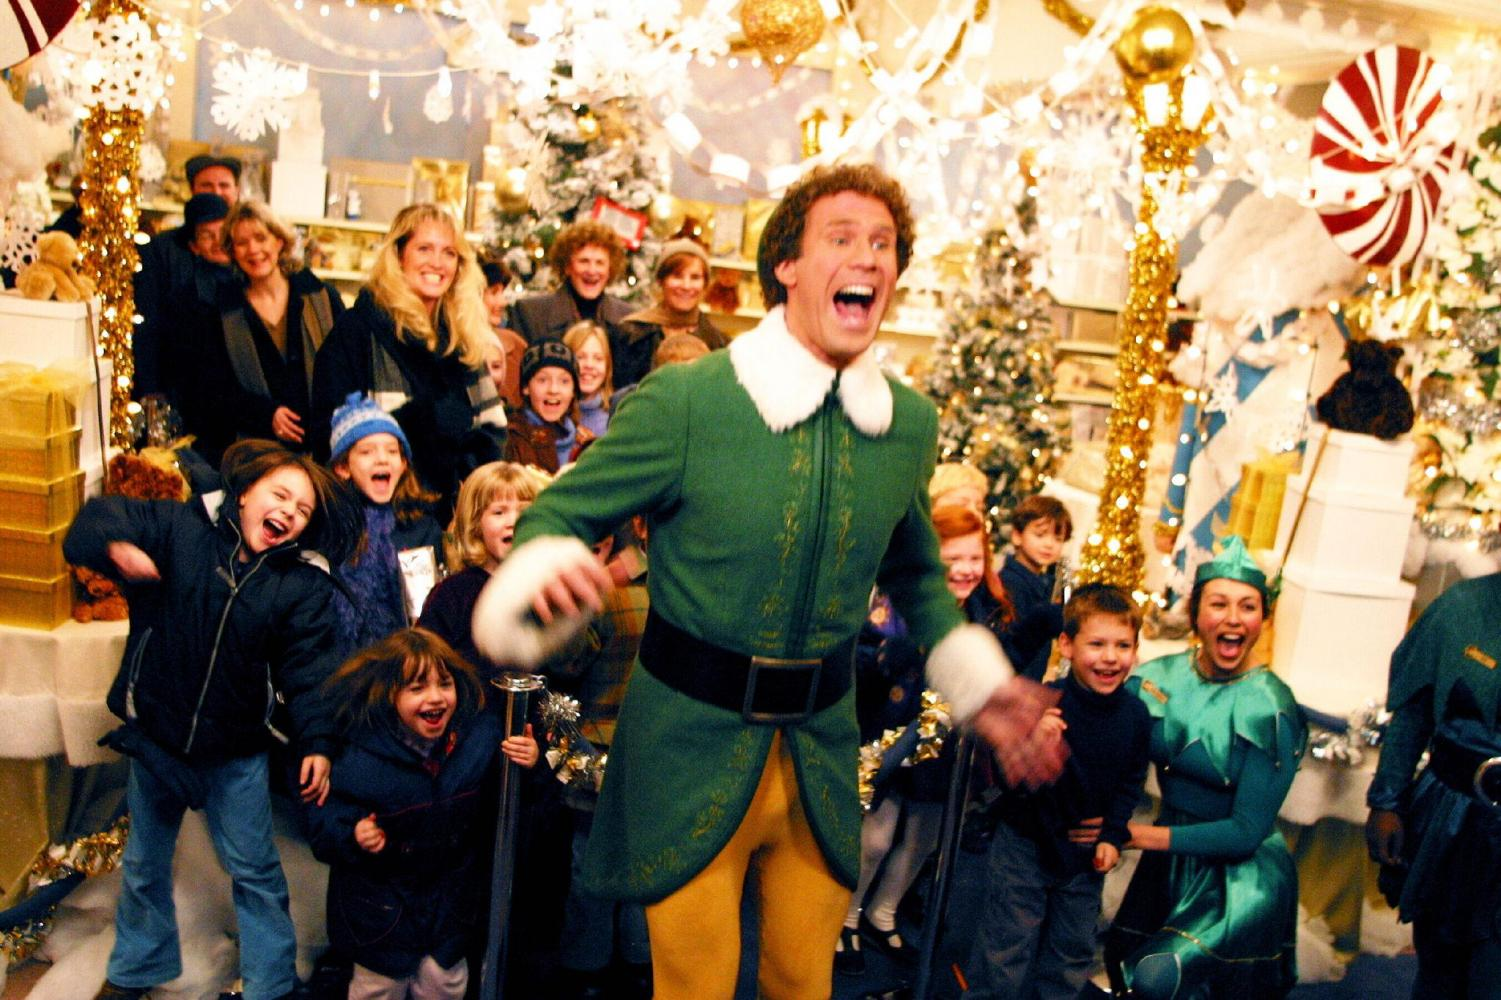 Will Ferrell playing Buddy the elf in Elf.